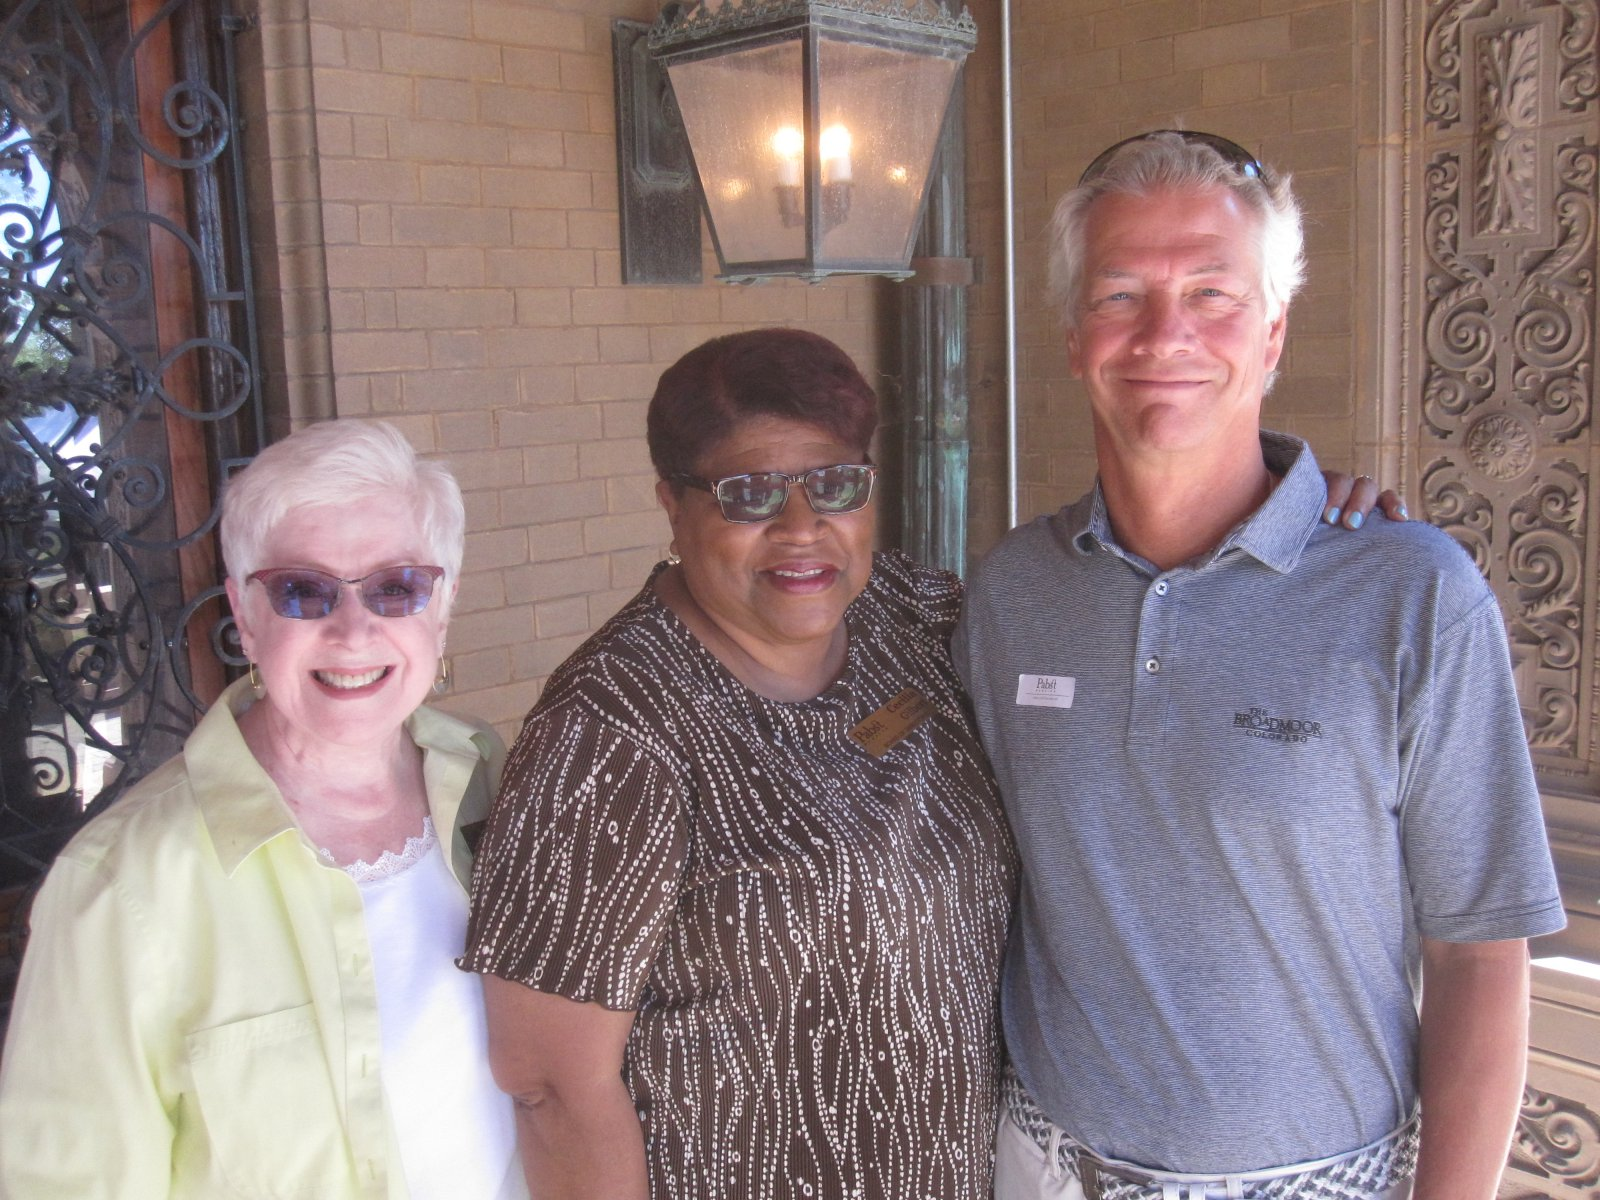 June Moberly, Cecilia Gilbert and James Pabst